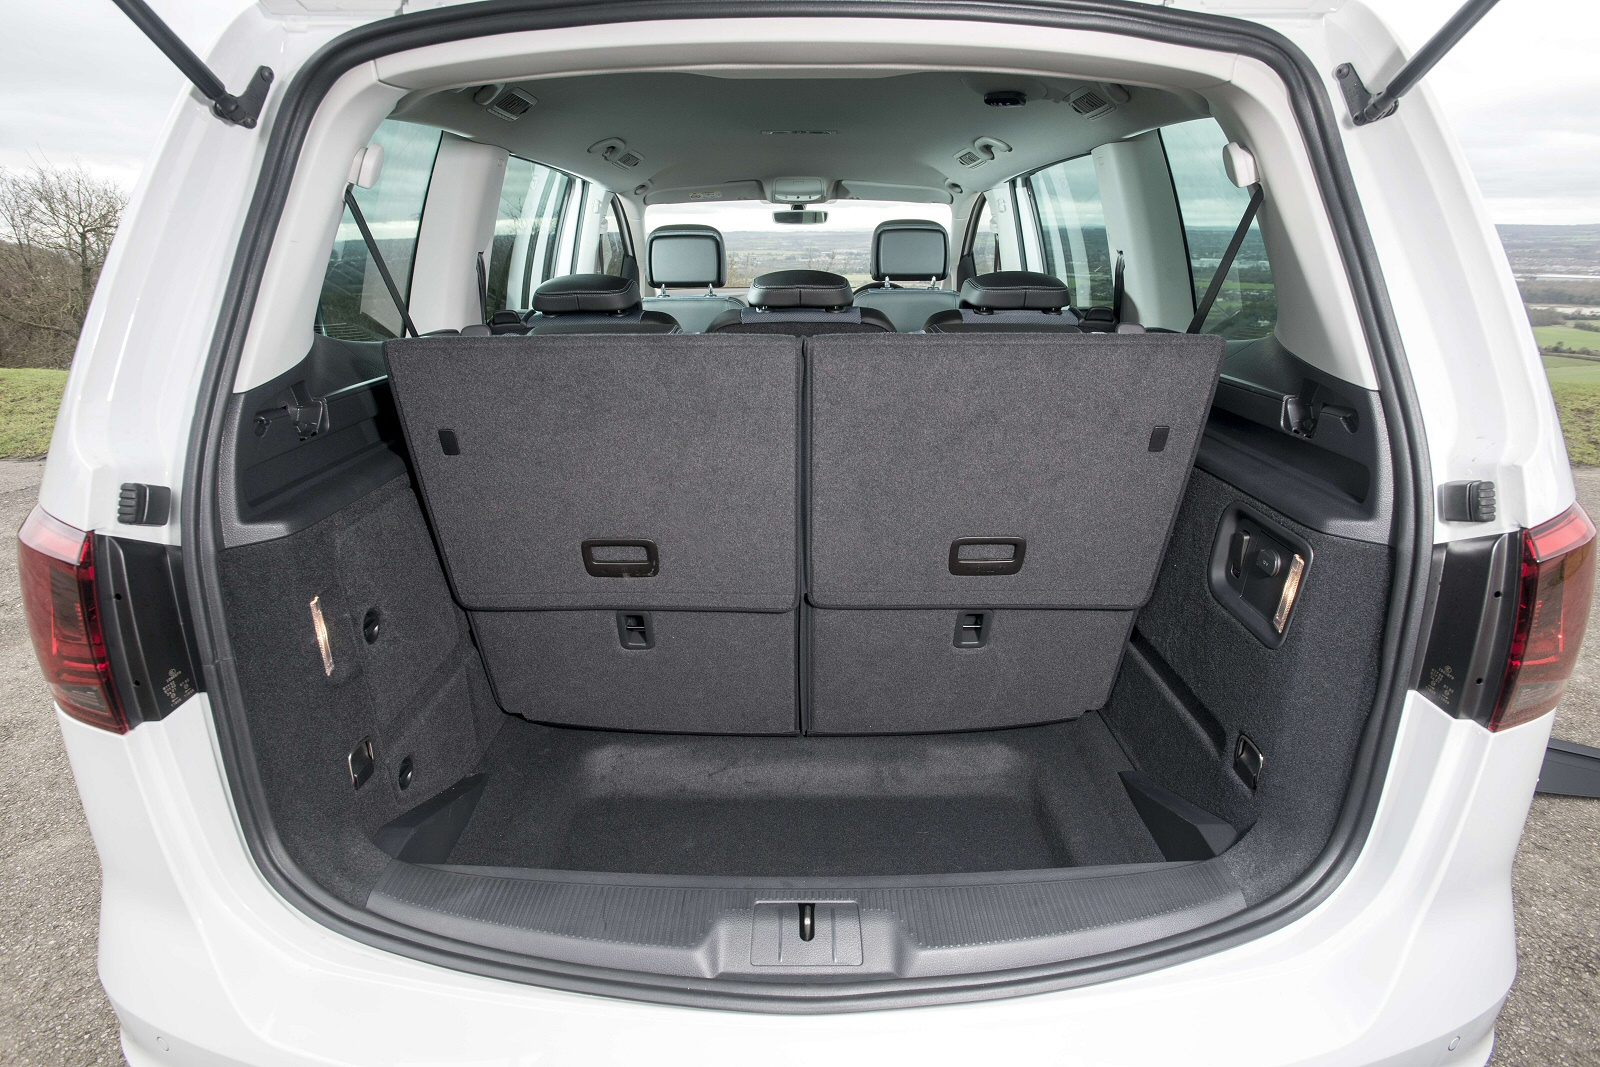 new seat alhambra 2 0 tdi cr ecomotive s 150 5dr diesel. Black Bedroom Furniture Sets. Home Design Ideas